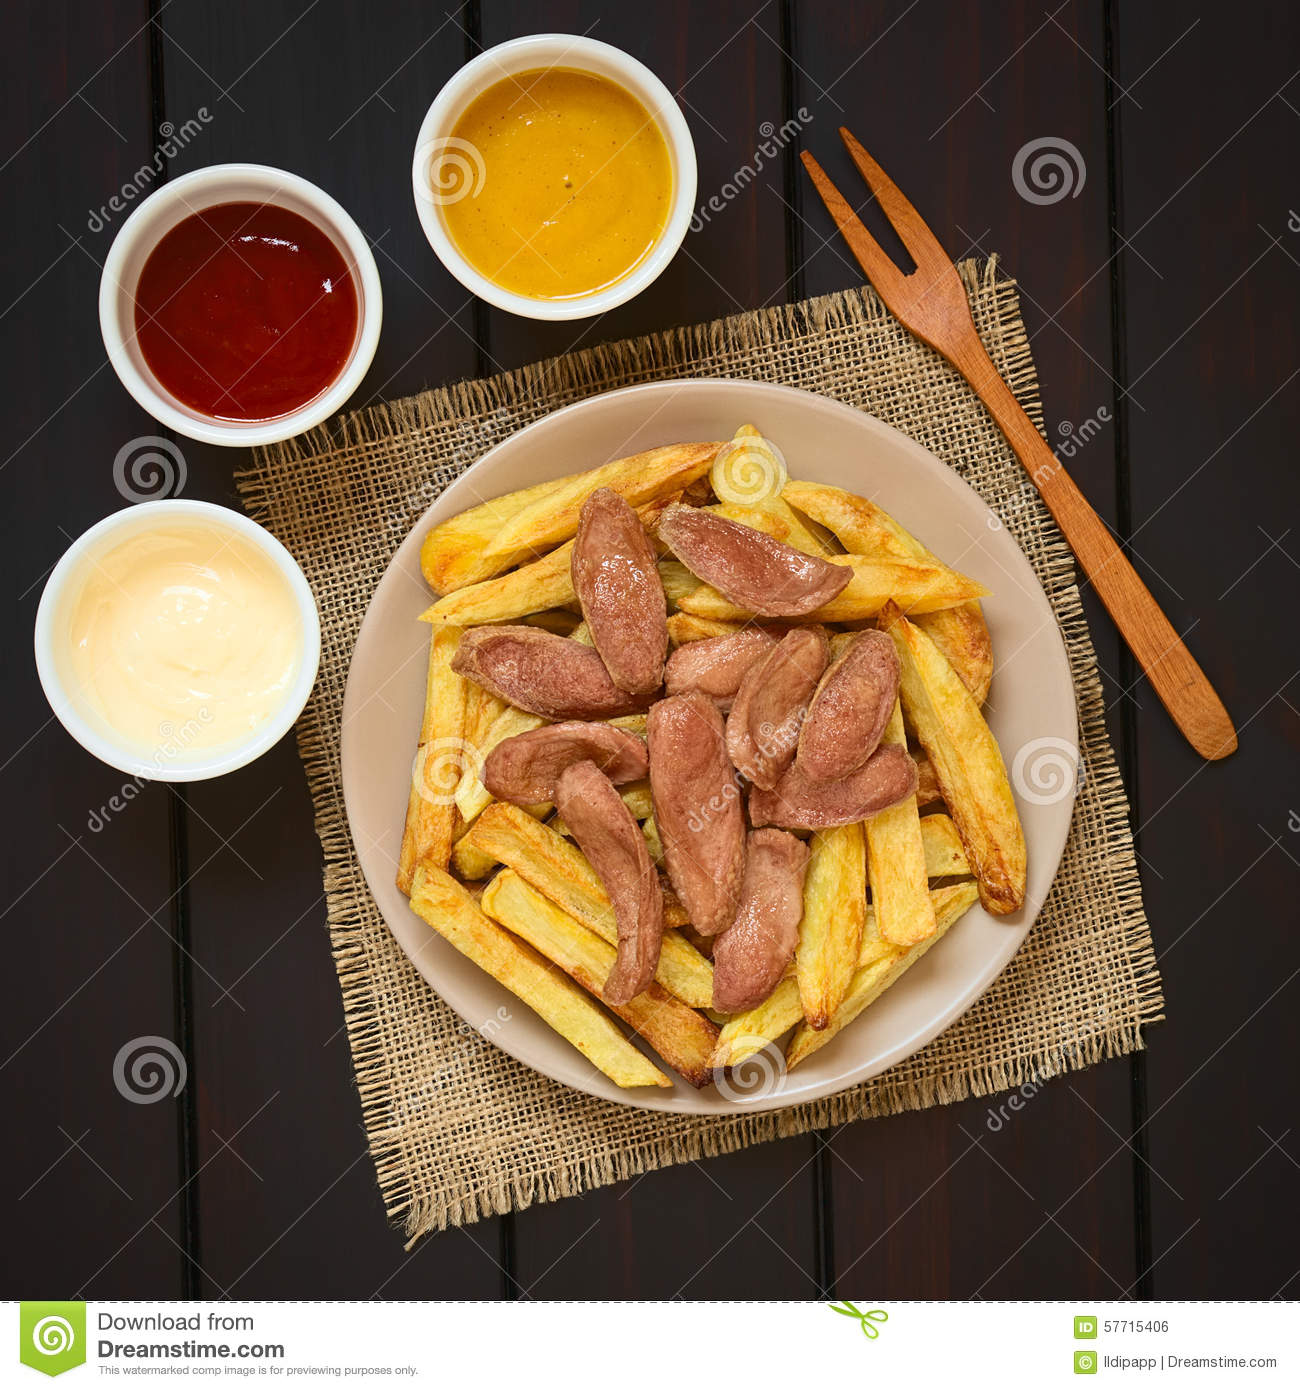 Salchipapas south american fast food stock photo image for American traditional cuisine